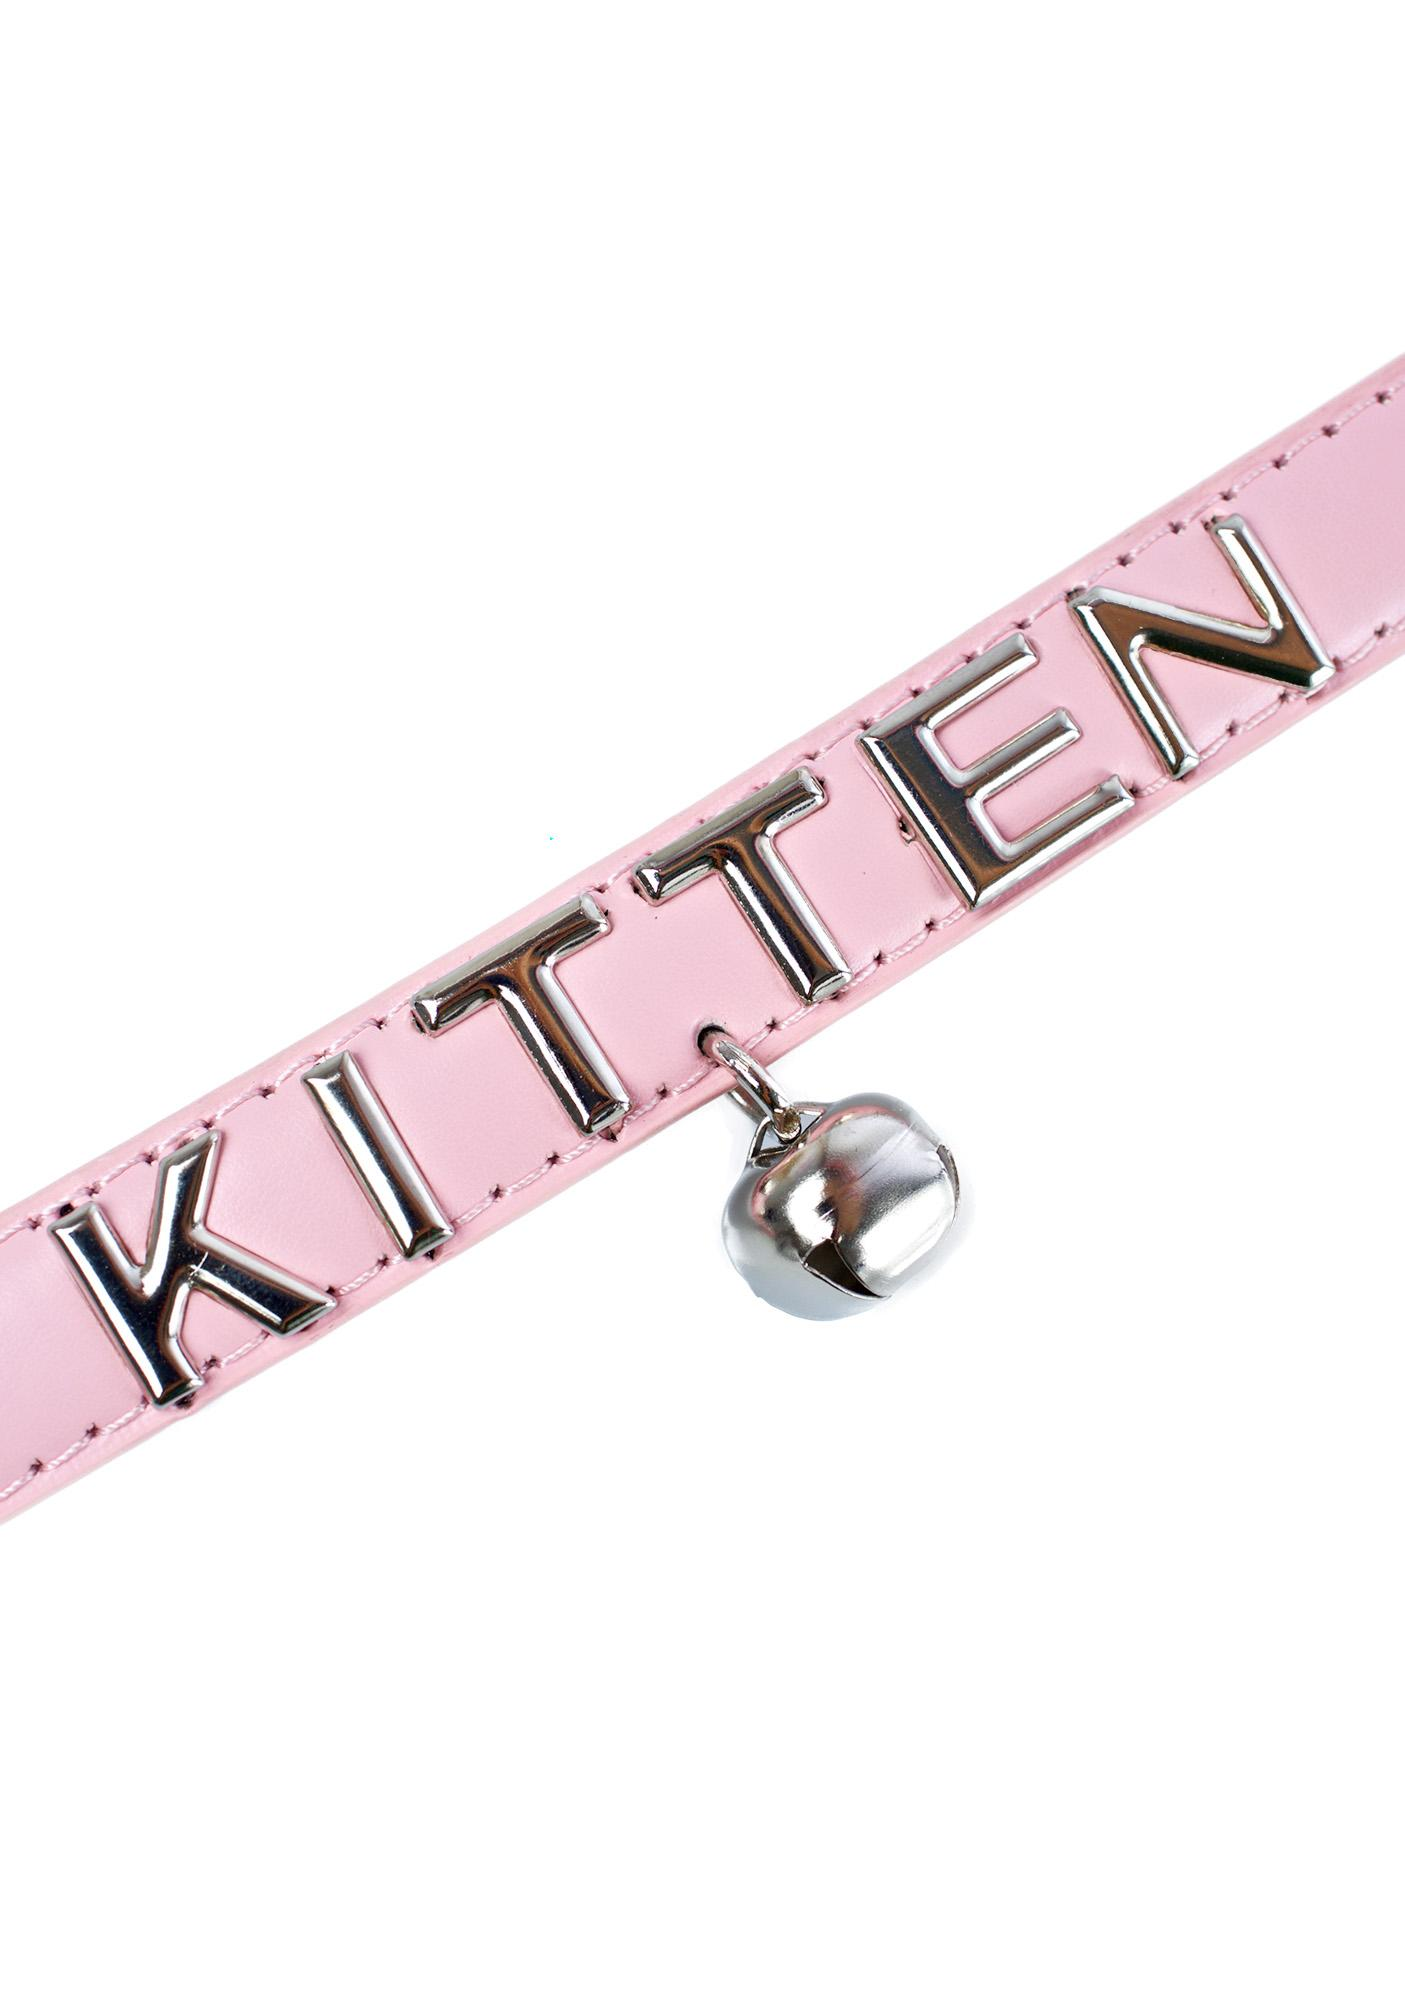 NecroLeather Beloved Kitten Bell Collar